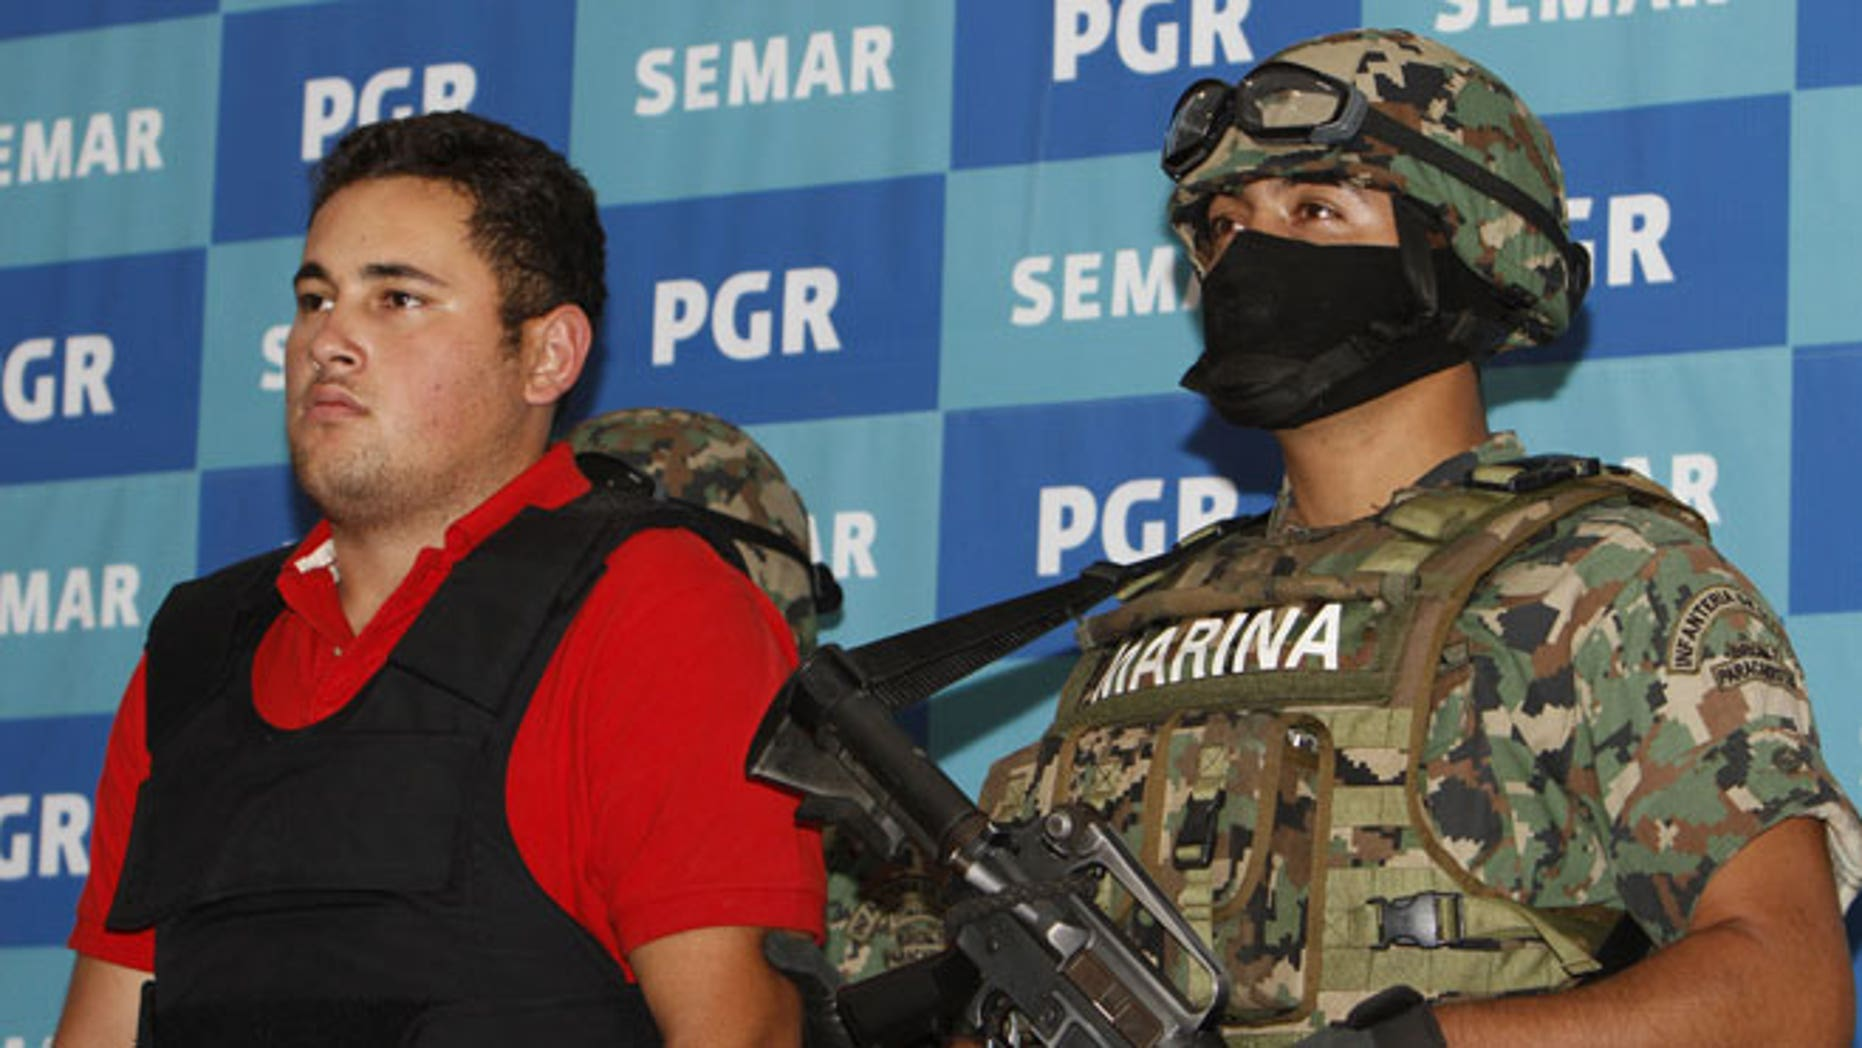 Mexico arrests son of most-wanted drug lord 'El Chapo' | Fox